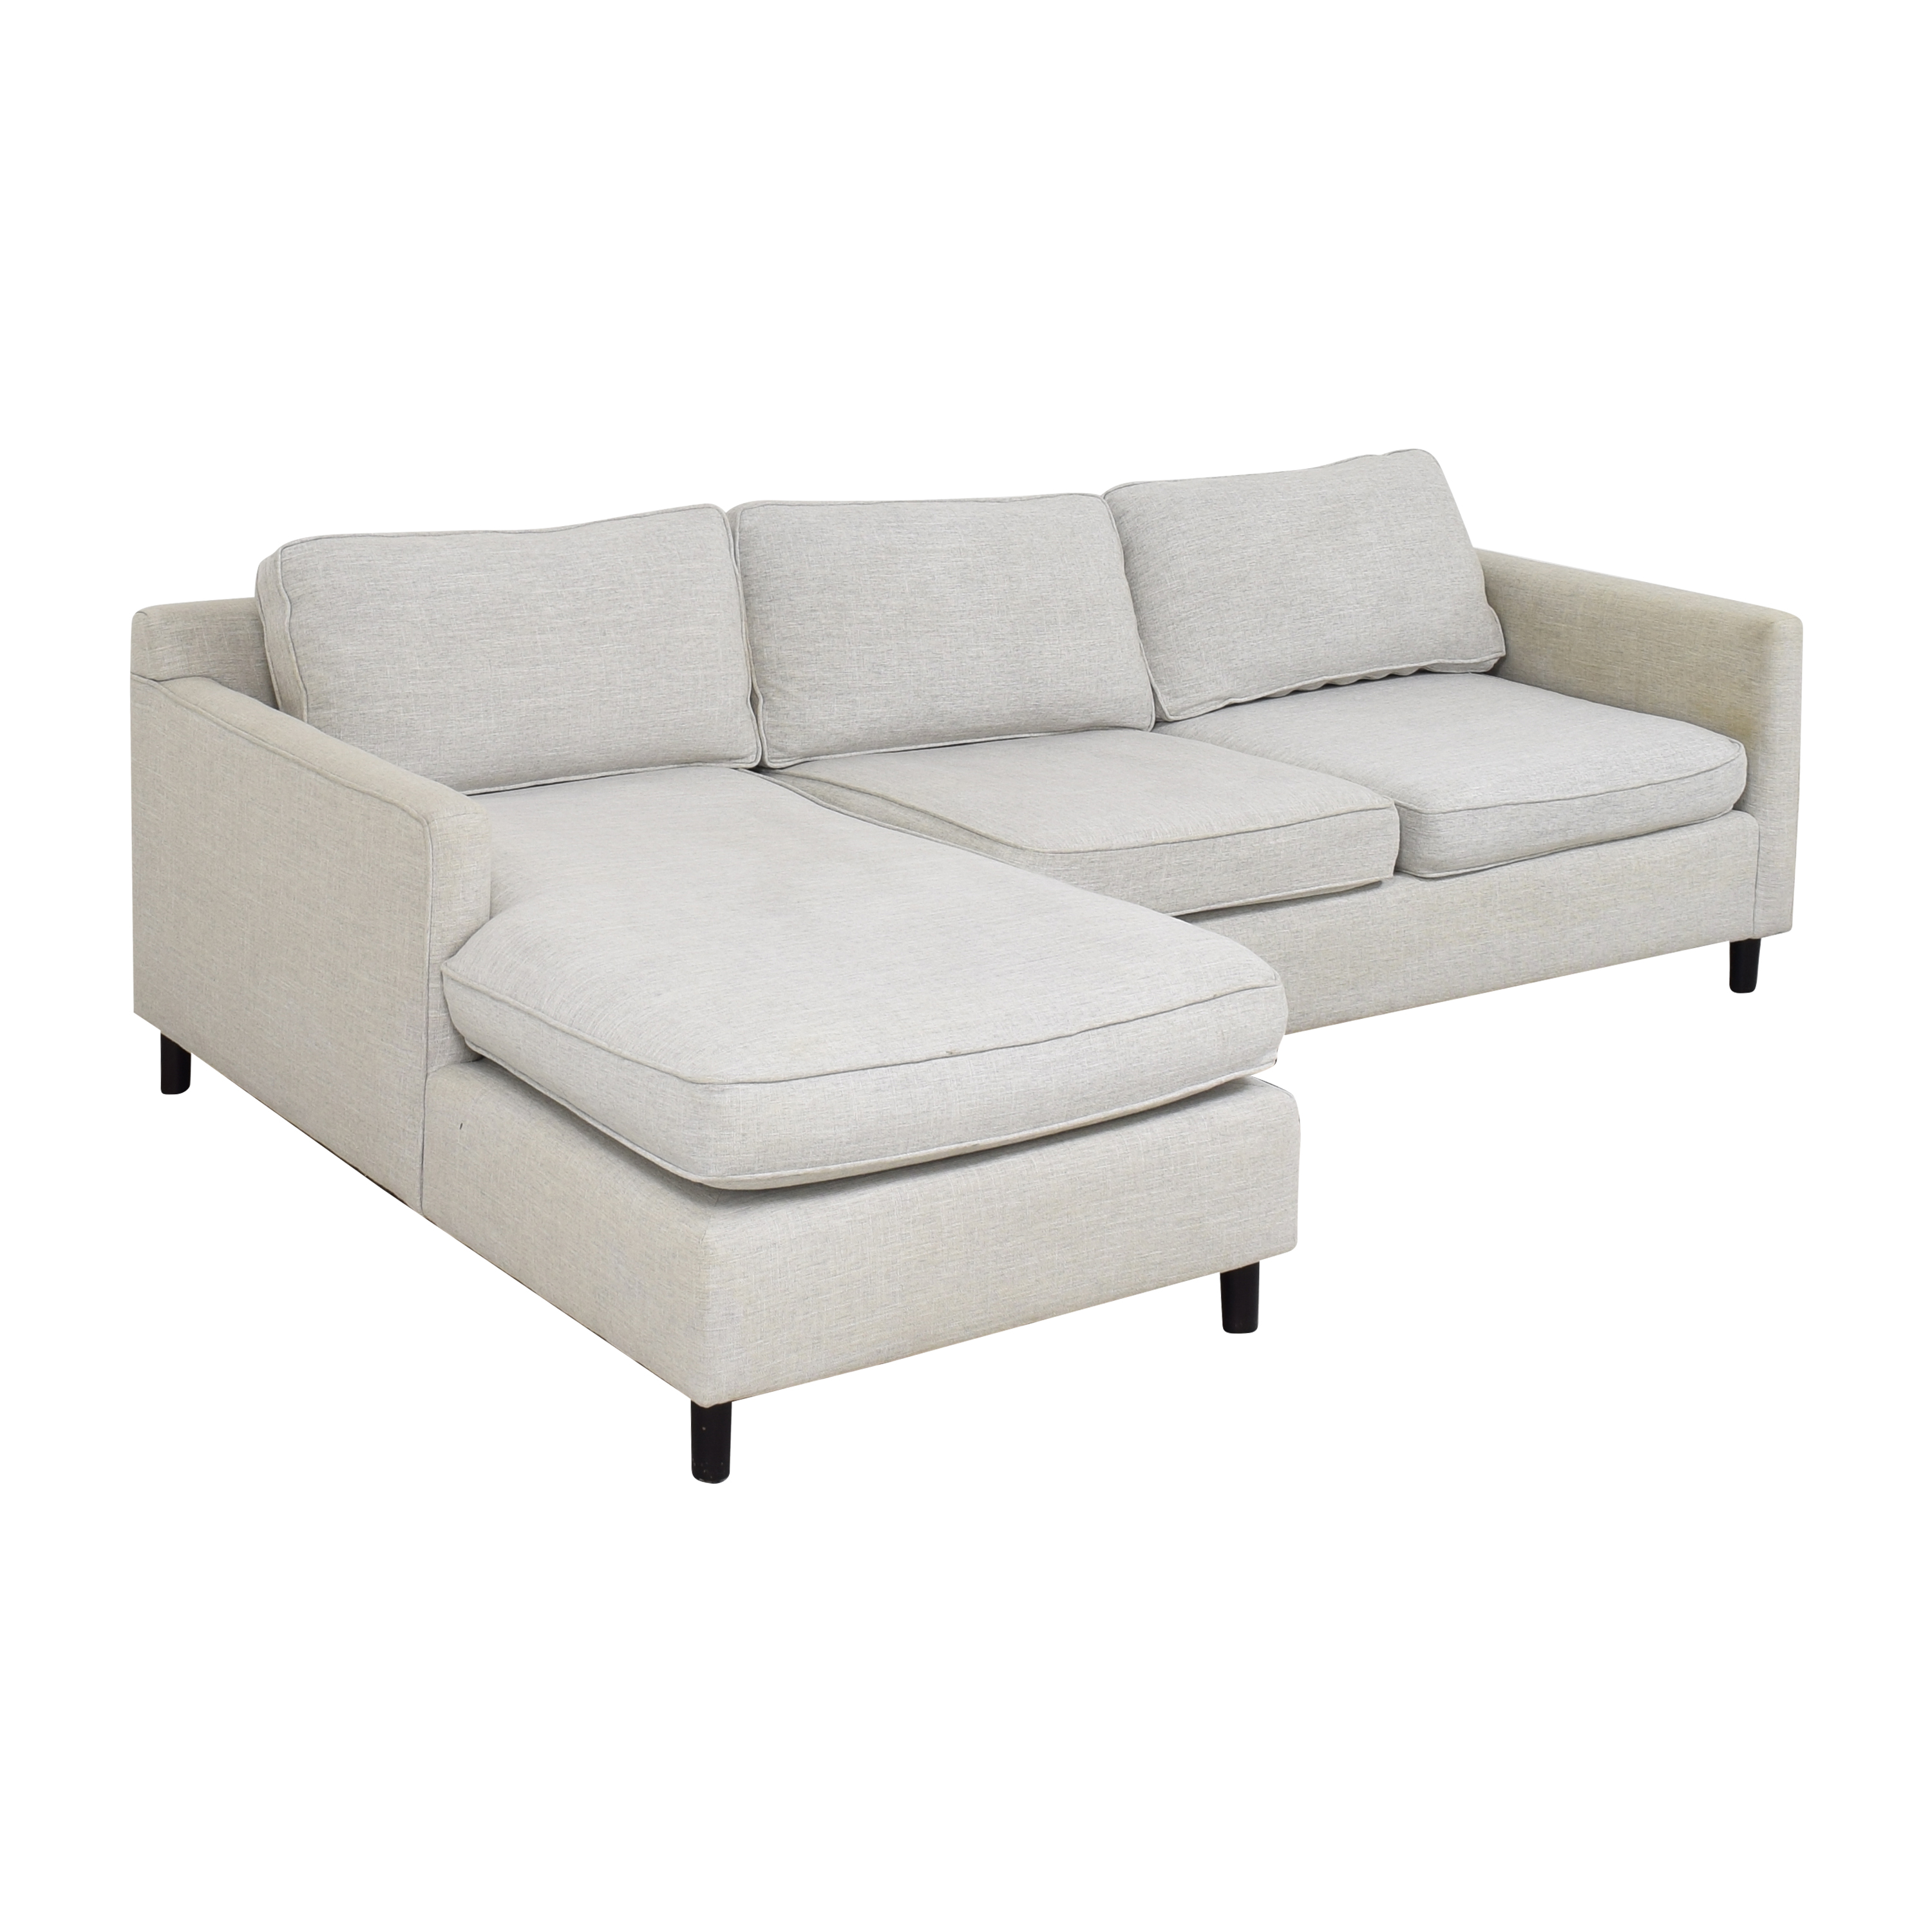 Mitchell Gold + Bob Williams Mitchell Gold + Bob Williams Sectional Sofa with Chaise ct